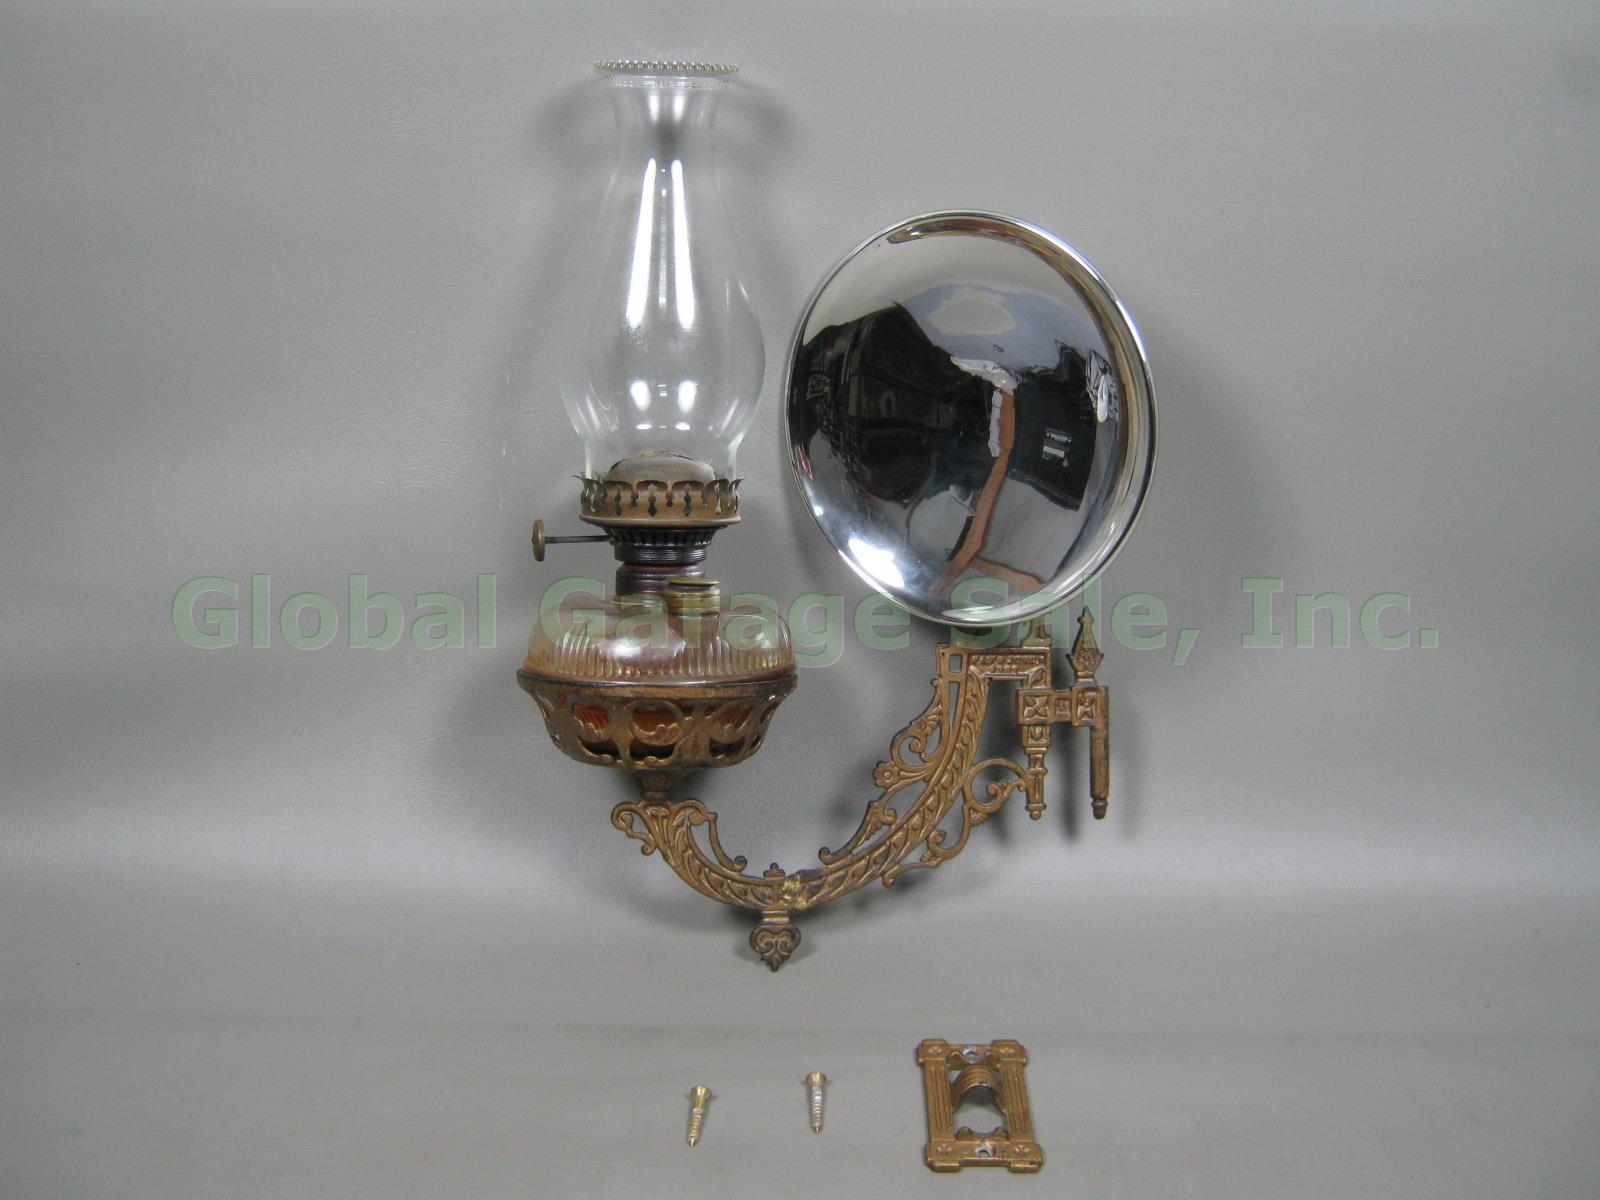 Bradley Hubbard Cast Iron Oil Kerosene Lamp Sconce Reflector + Wall Bracket 1881 eBay